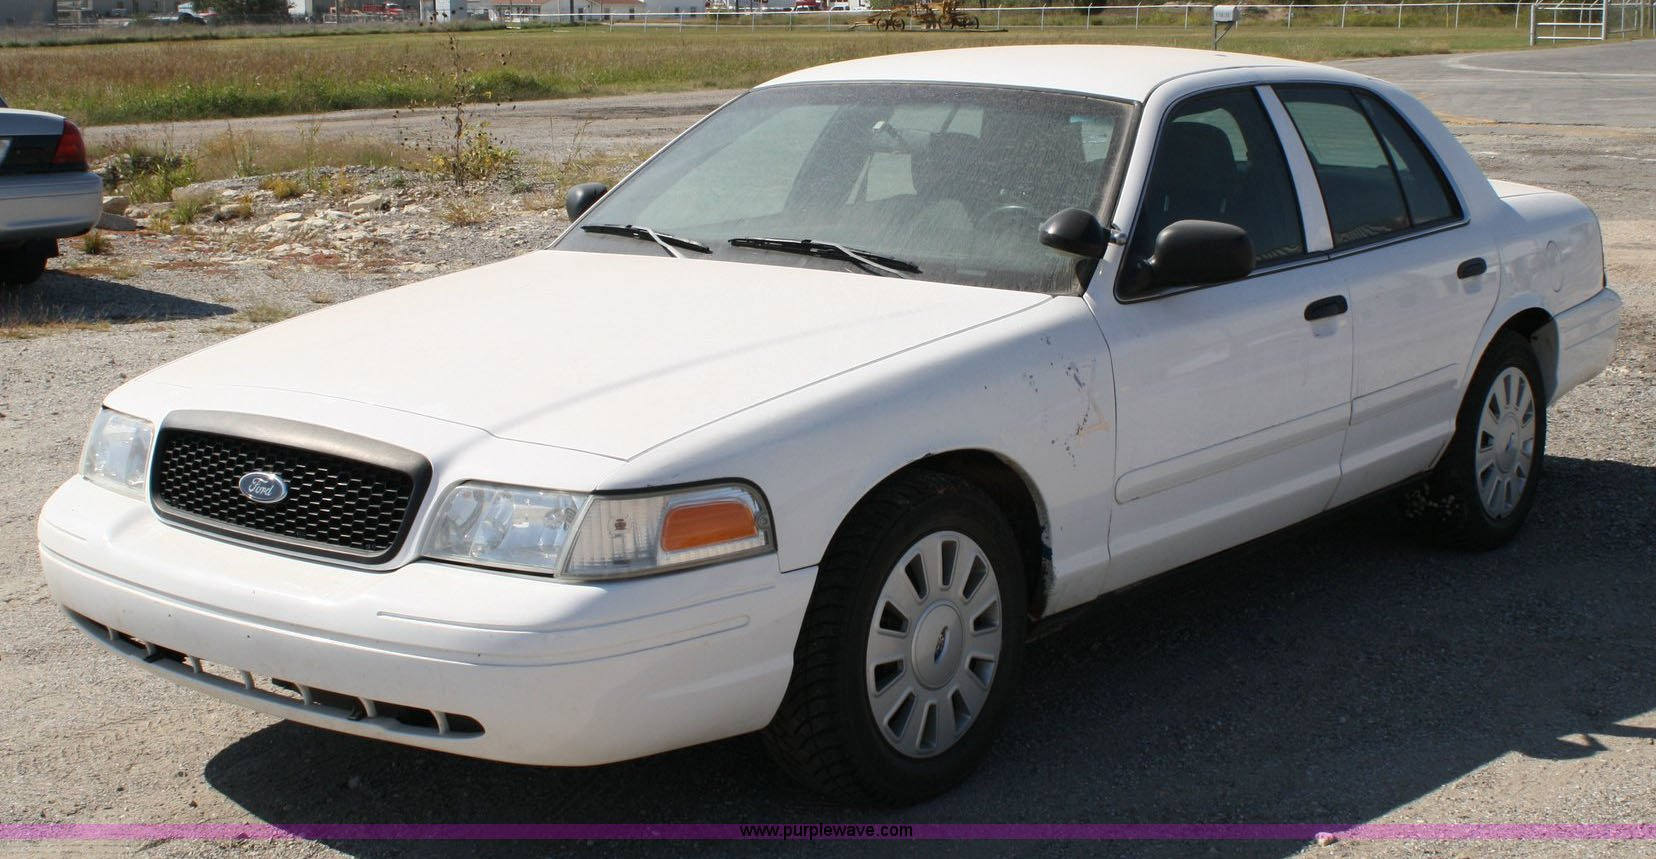 2006 Ford Crown Victoria Police Interceptor | Item 6408 | SO...